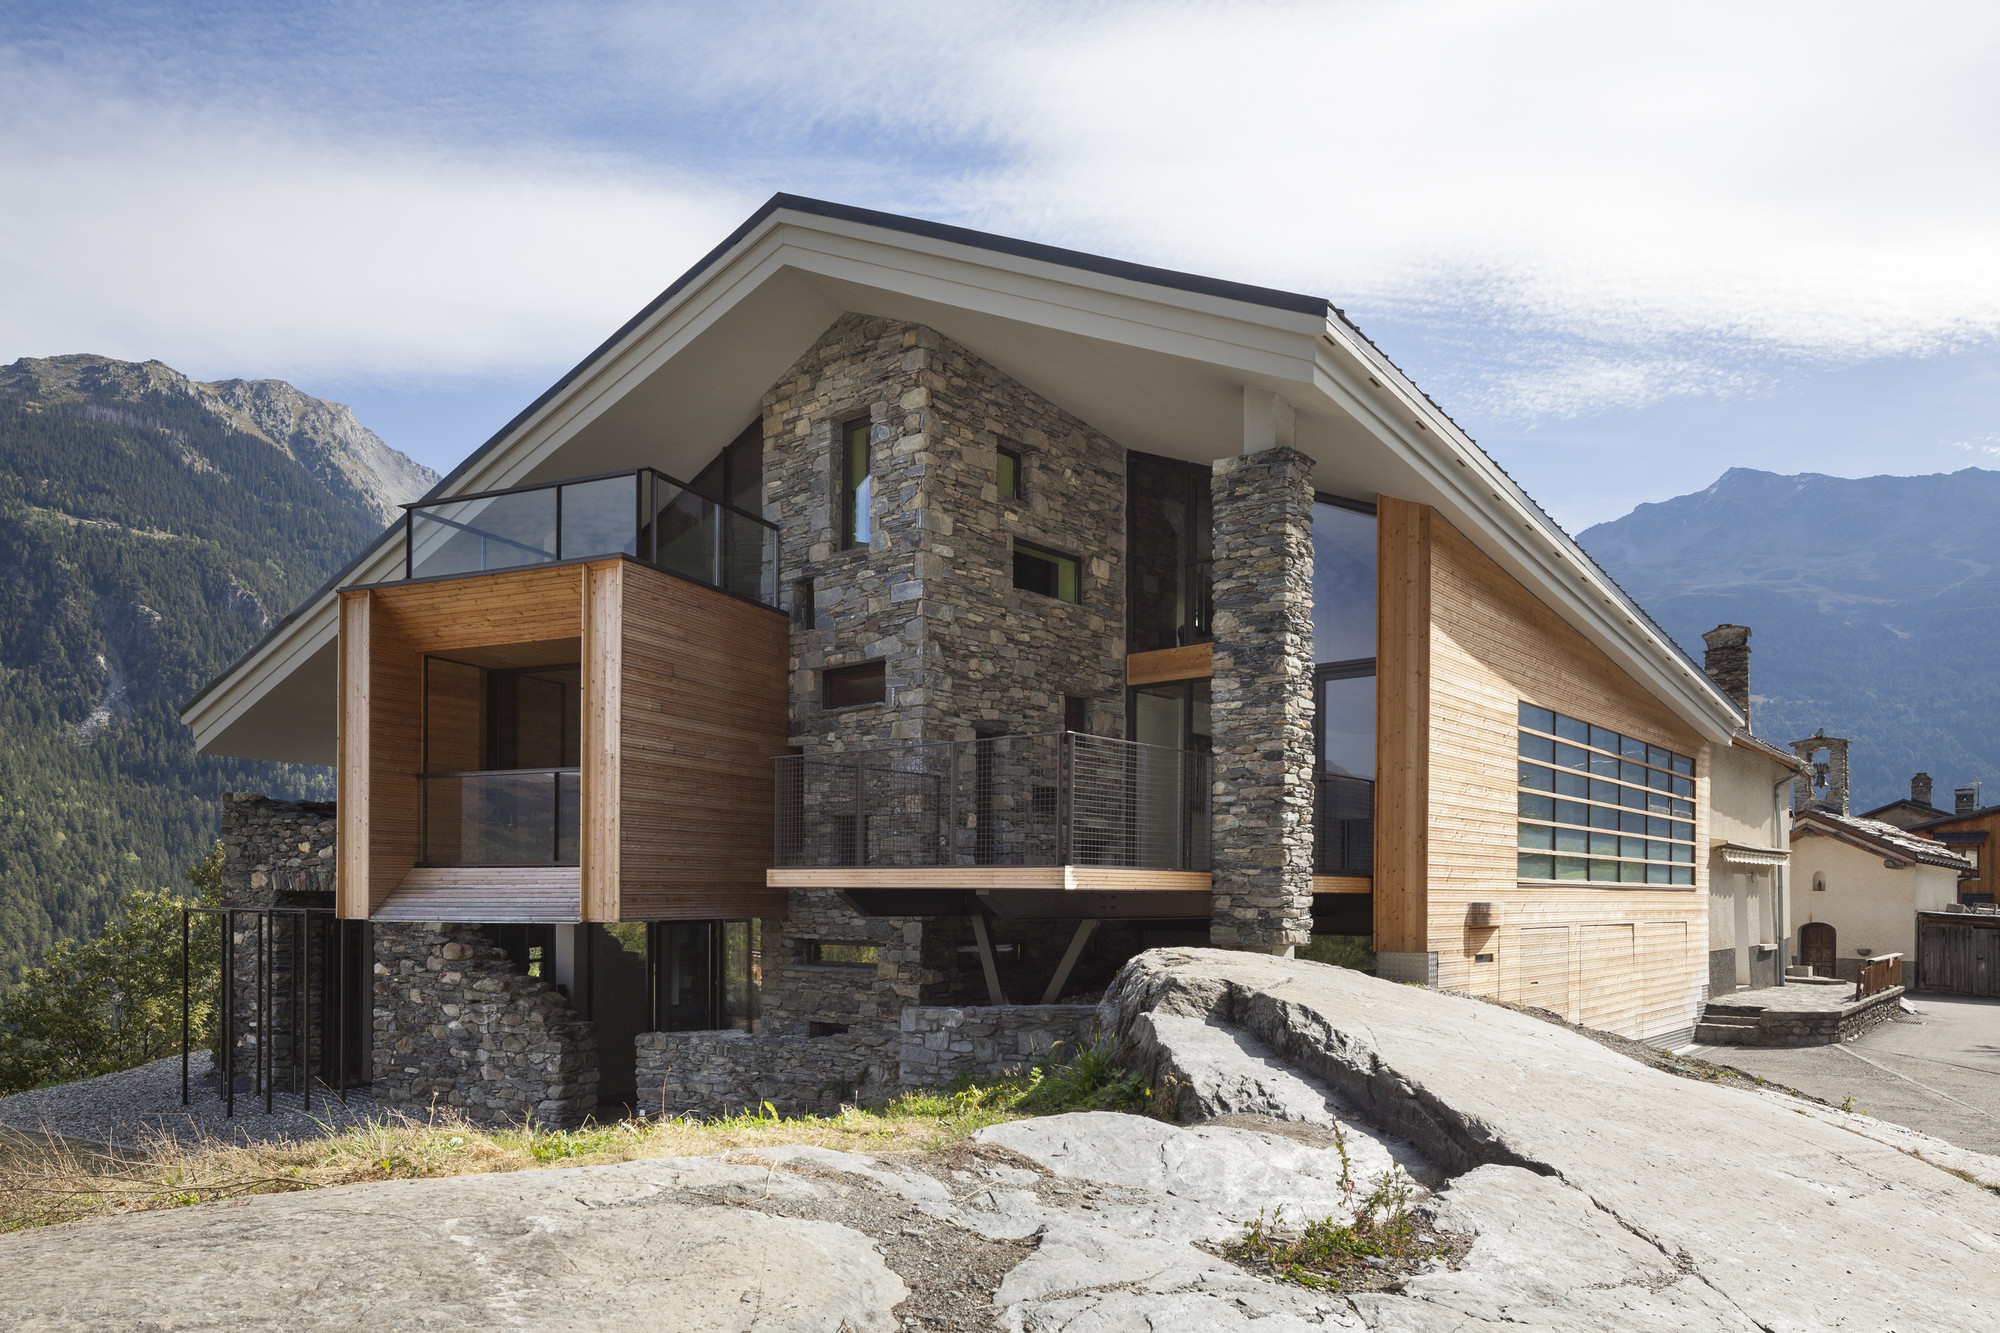 Mineral lodge atelier d architecture christian girard for Mountain house media